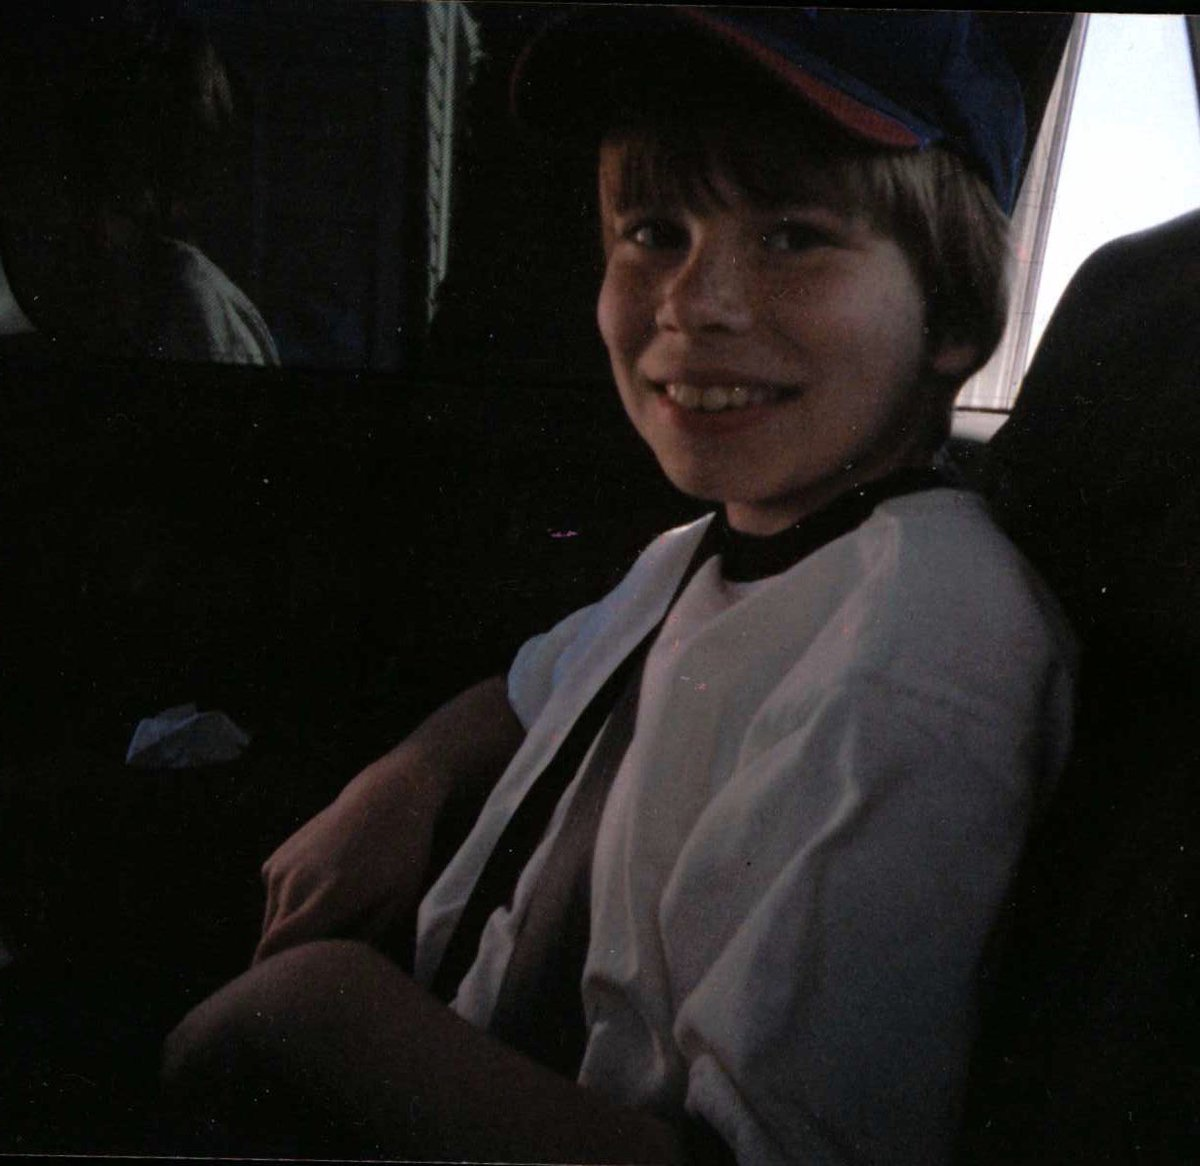 happy 25th #PokemonDay  this is me on the way to NYC for the Diamond and Pearl release  2007